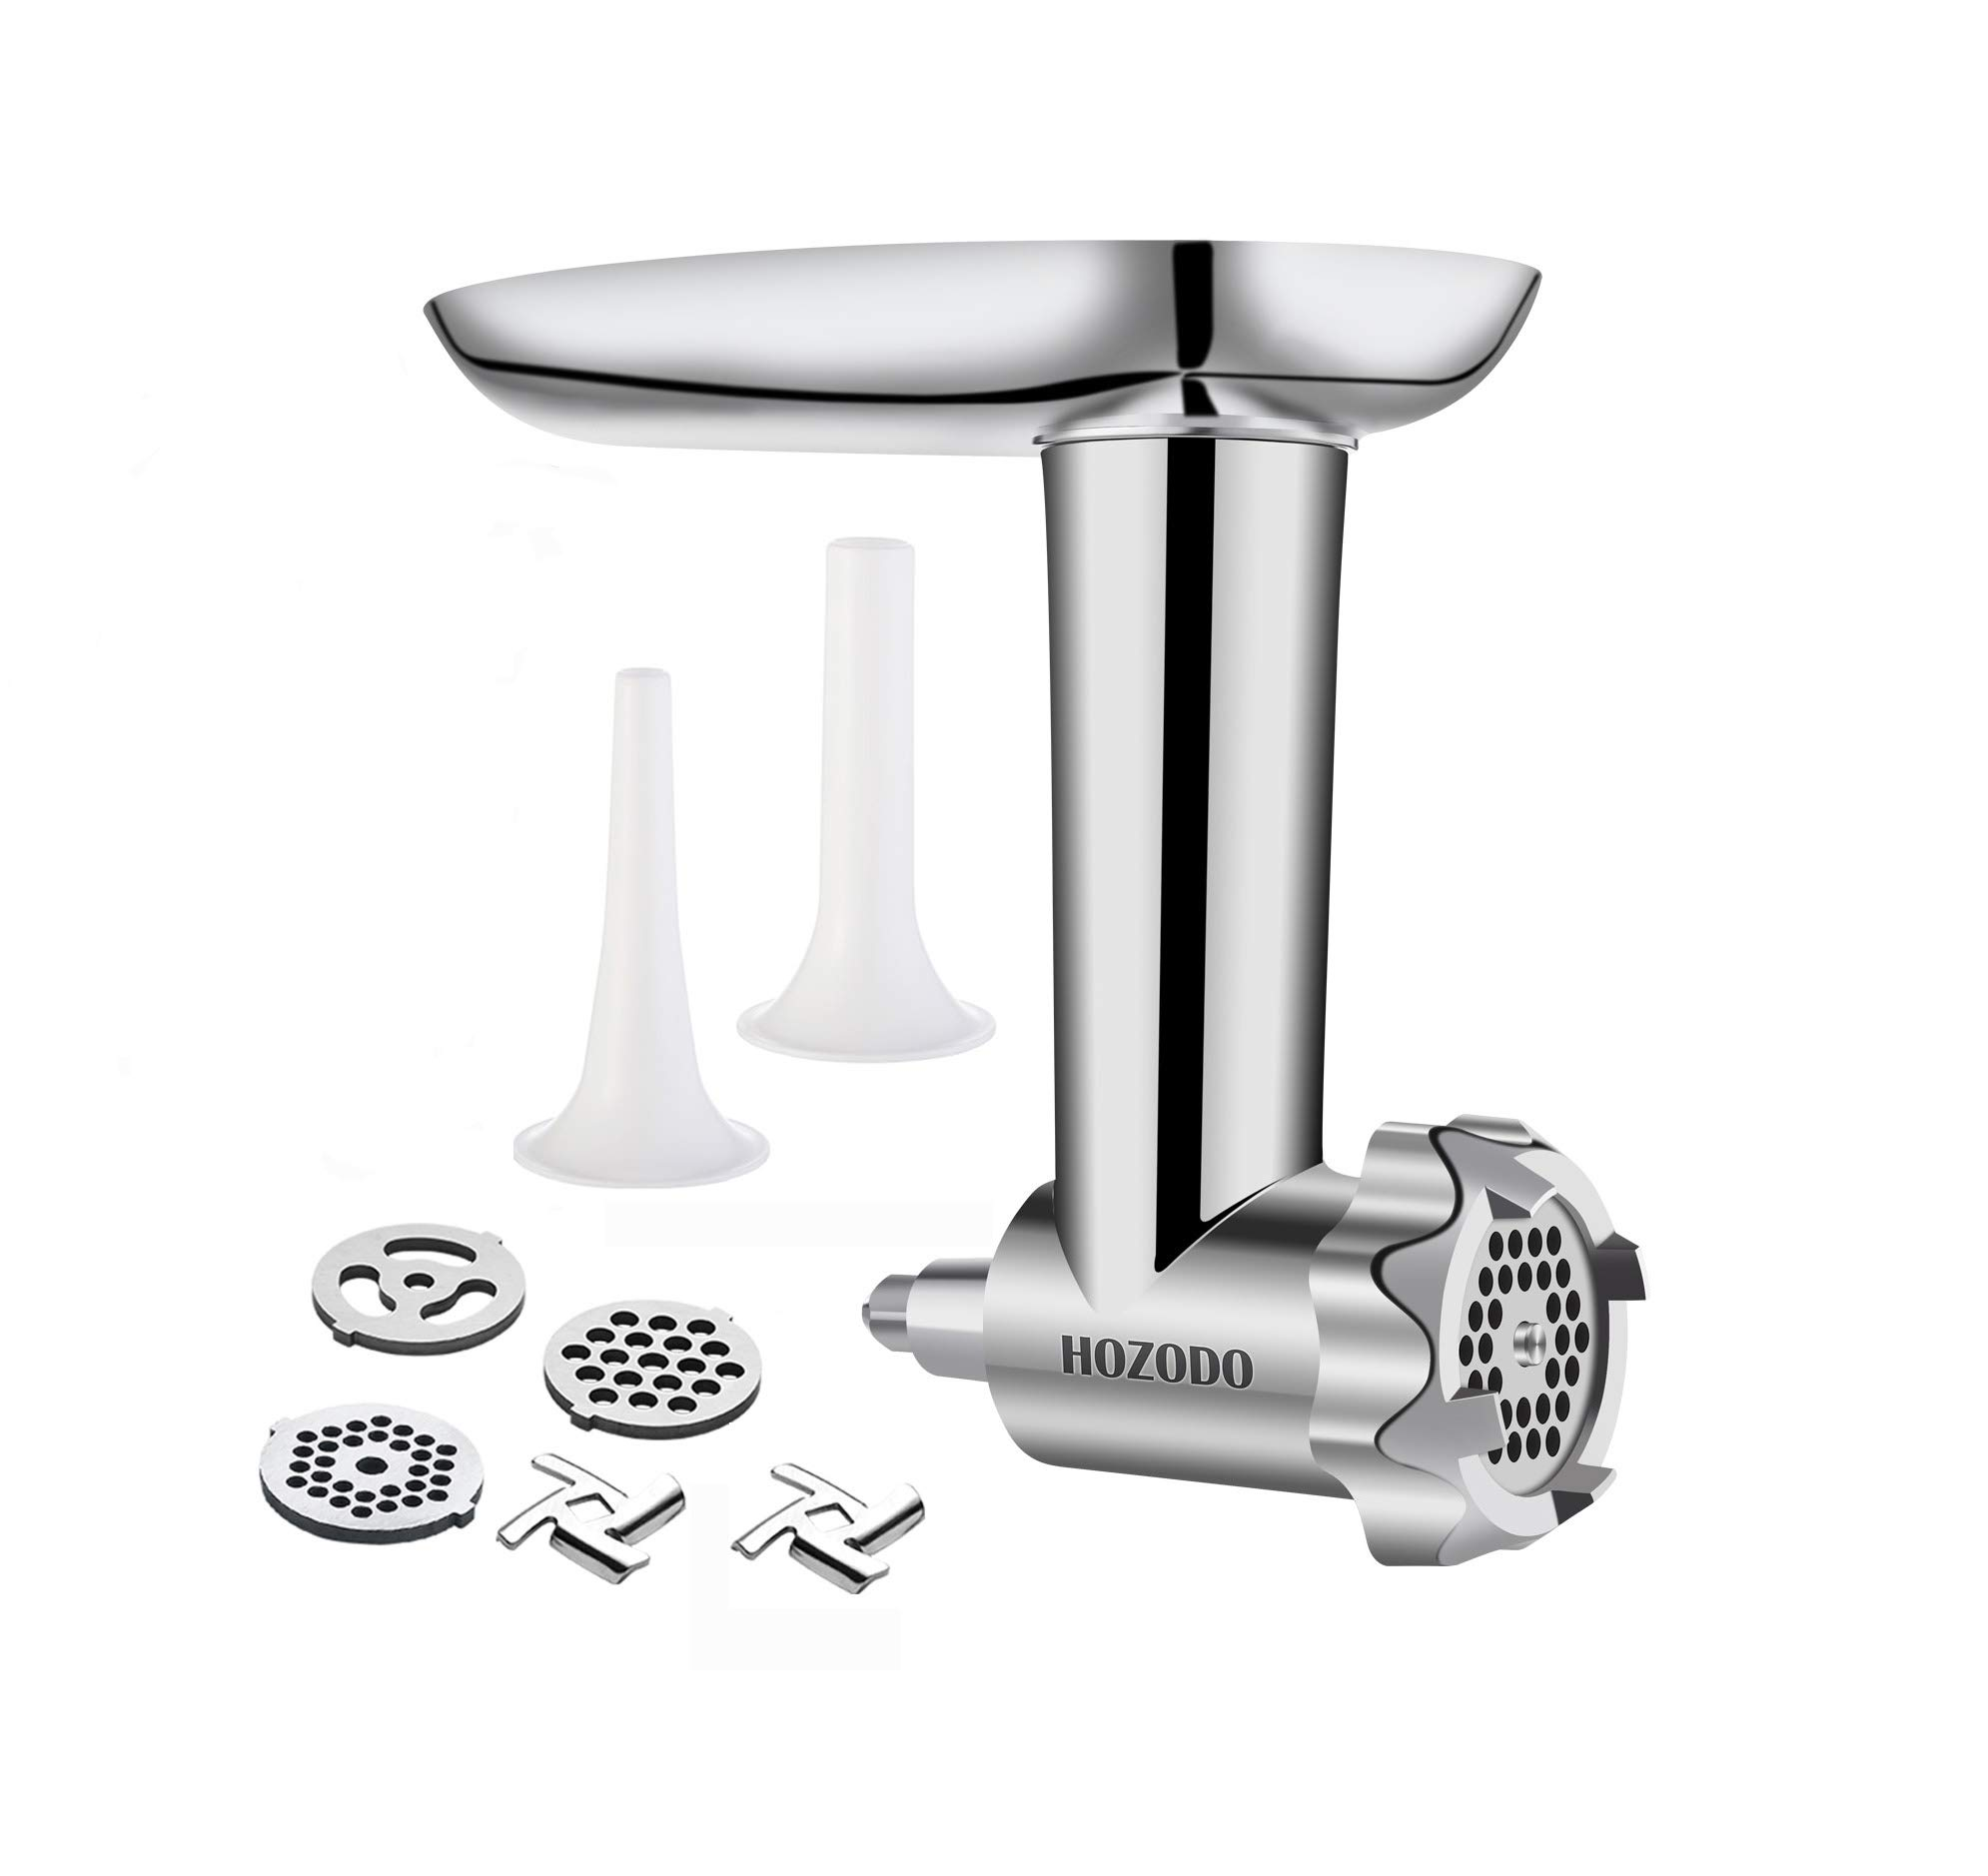 Metal Food Meat Grinder Attachment for KitchenAid Stand Mixers - Including Sausage Stuffer Accessory